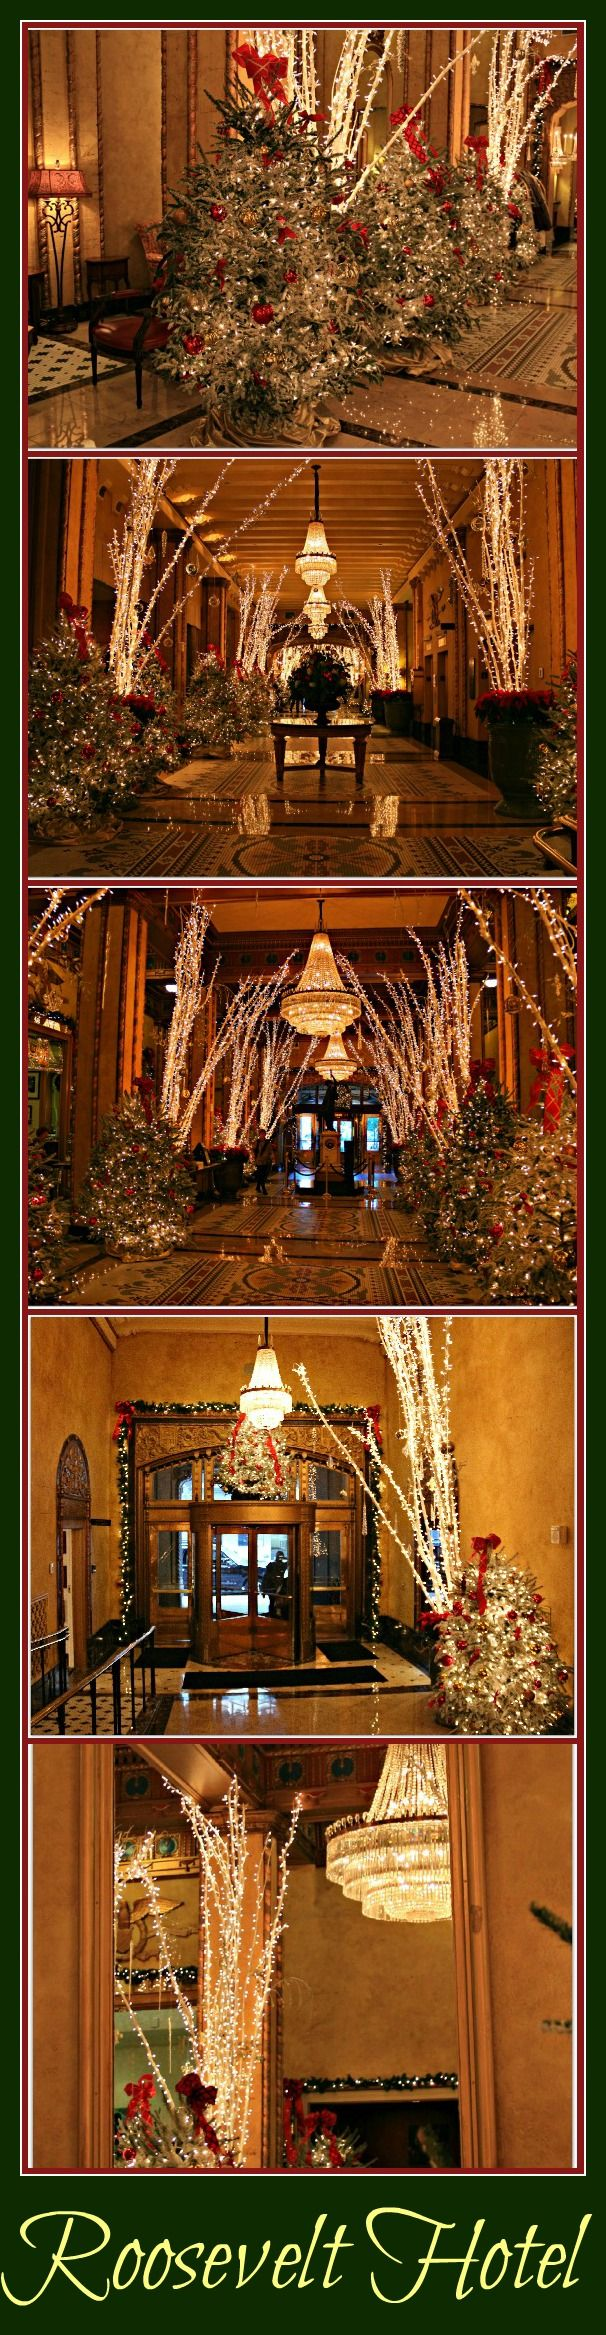 Christmas time at the Roosevelt Hotel in New Orleans